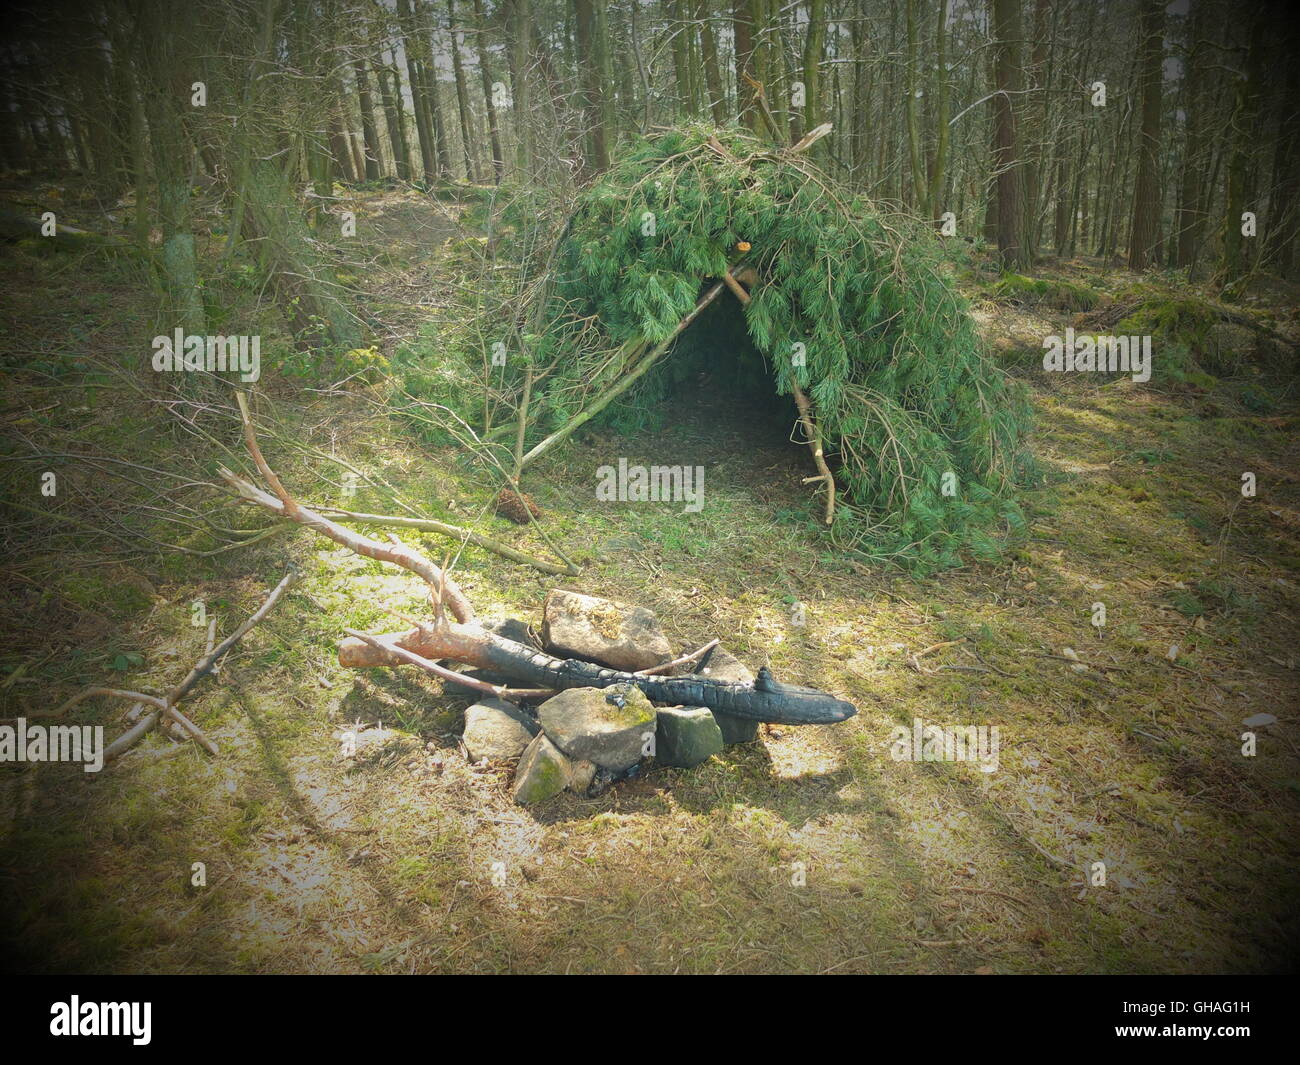 A naturally-built druid shelter in the woods by Doll Tor stone circle near Stanton-in-the-Peak, Derbyshire, UK - Stock Image